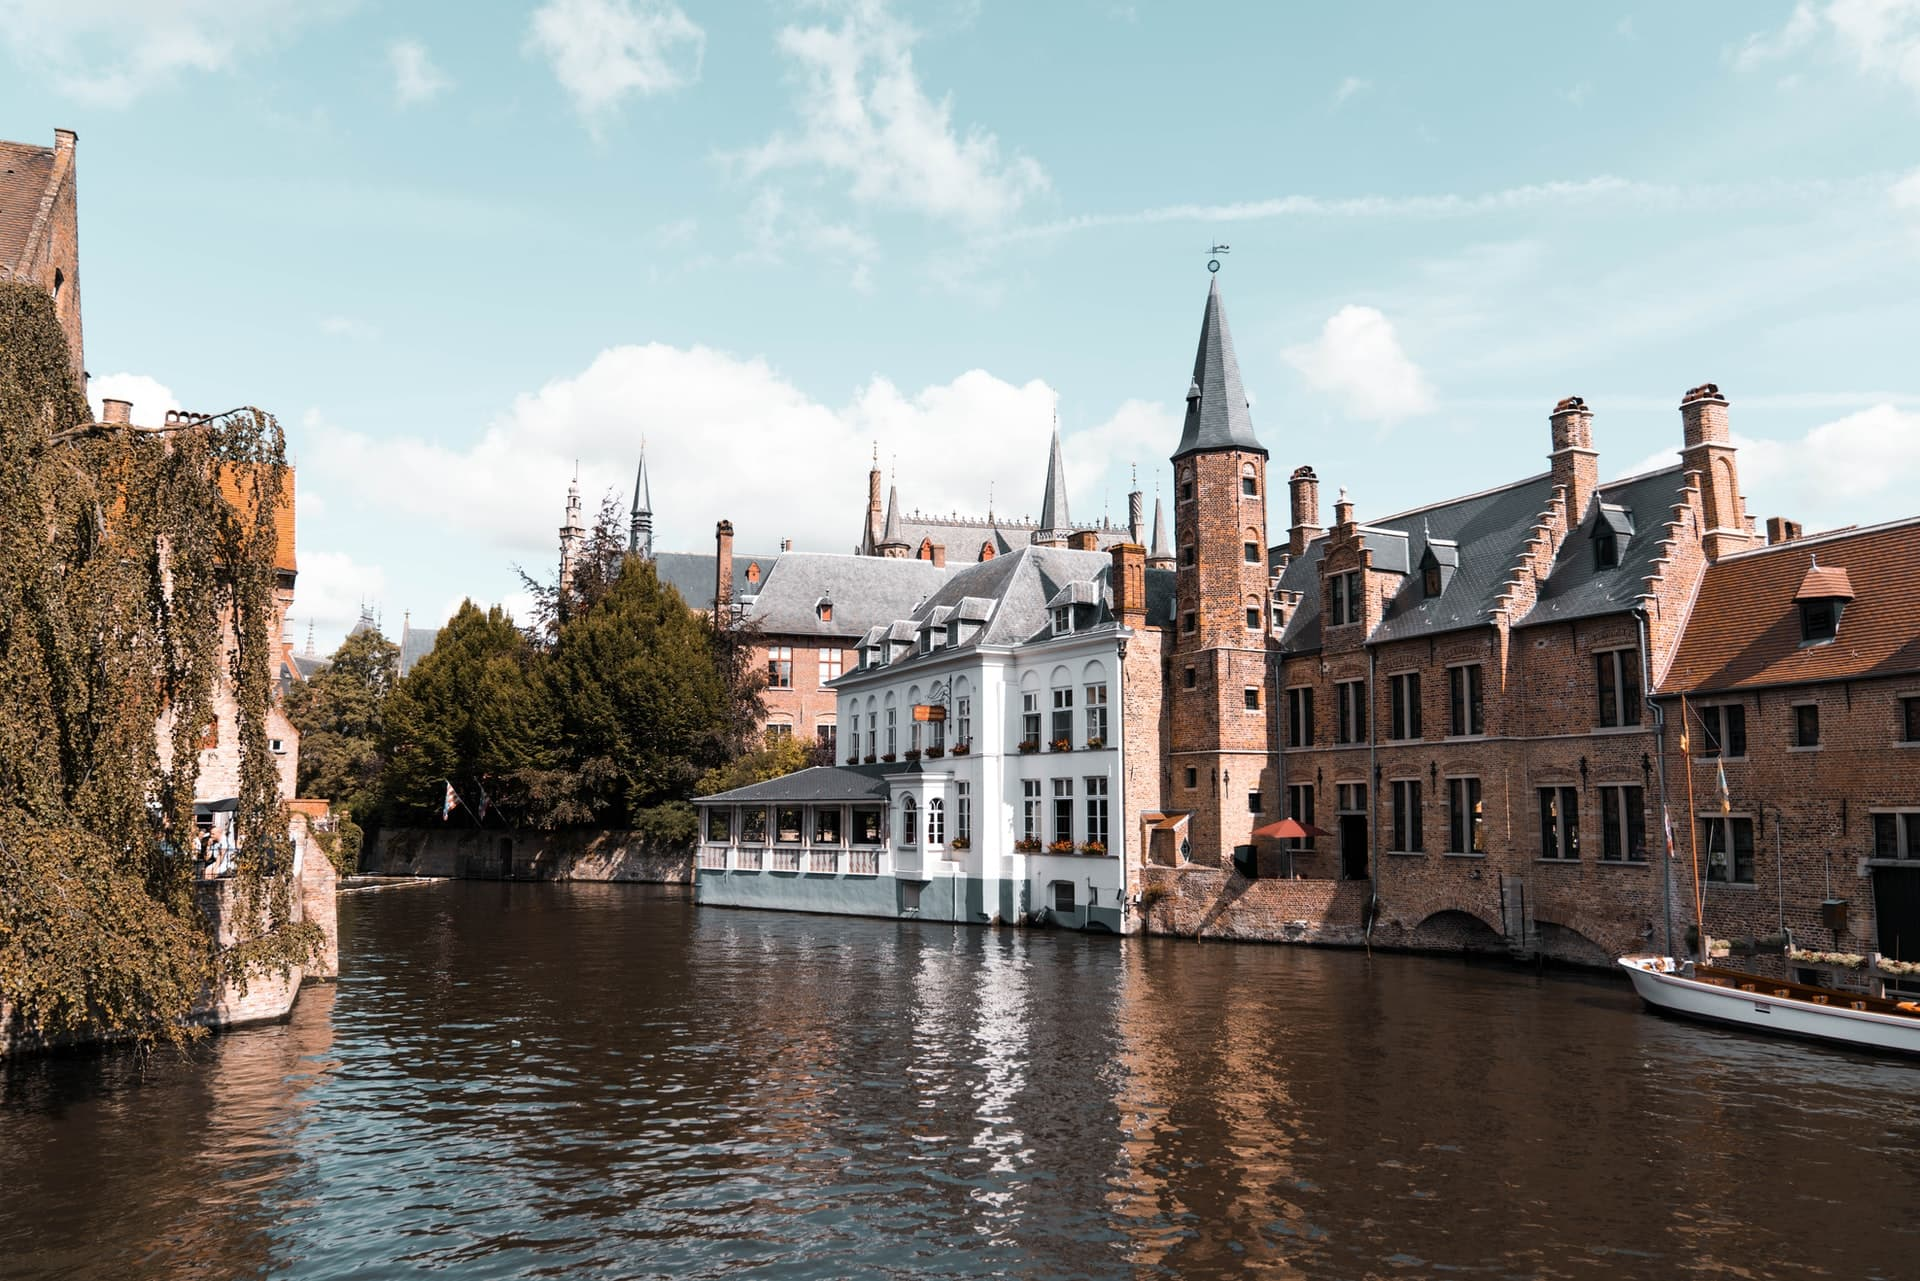 Boat tour in Bruges, Belgium - stop 1 on this one day in Bruges itinerary.